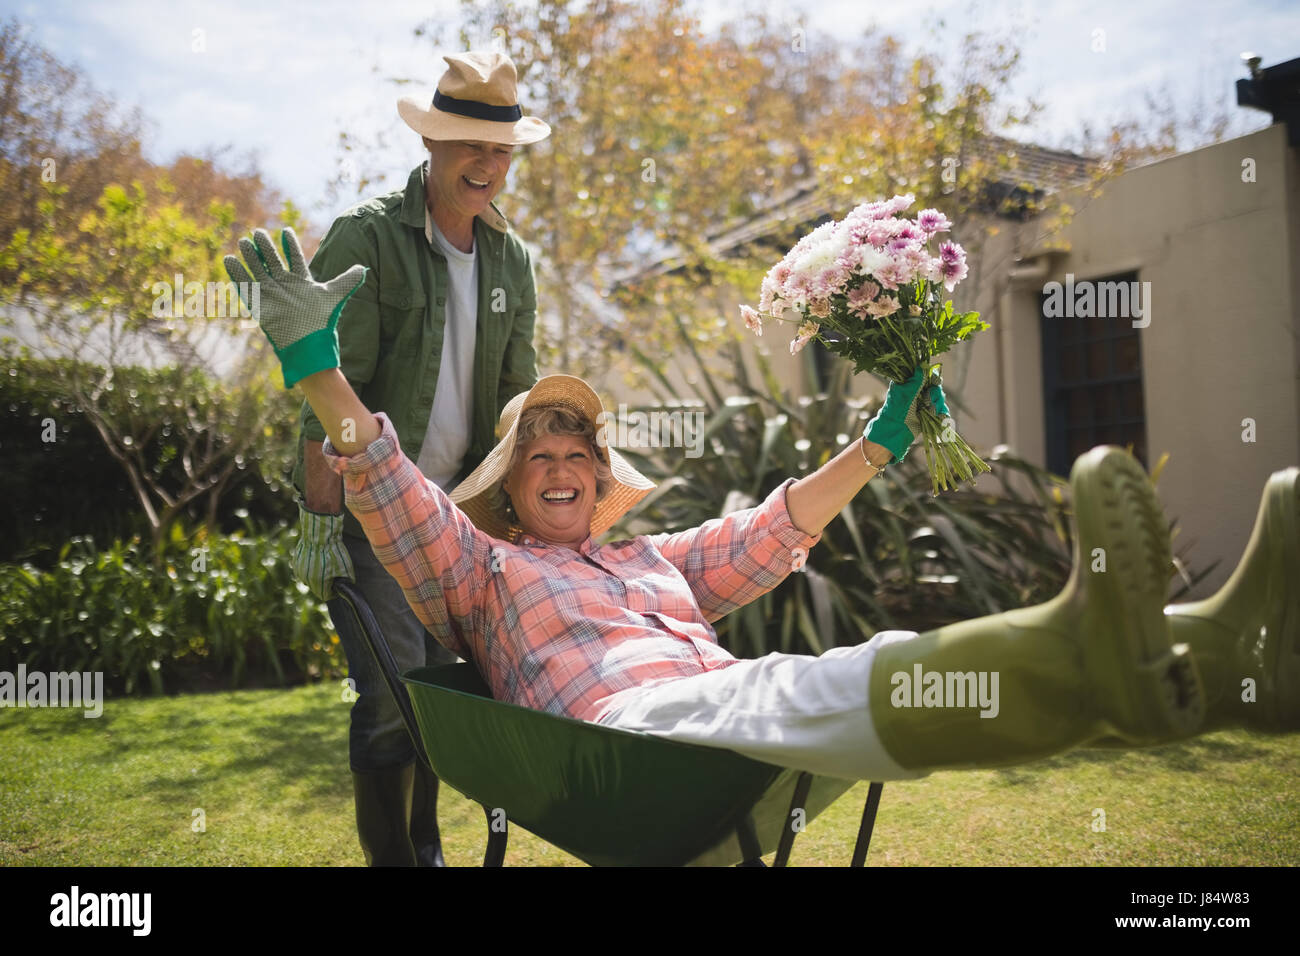 Man carrying cheerful senior woman holding bouquet in wheel borrow at backyard - Stock Image